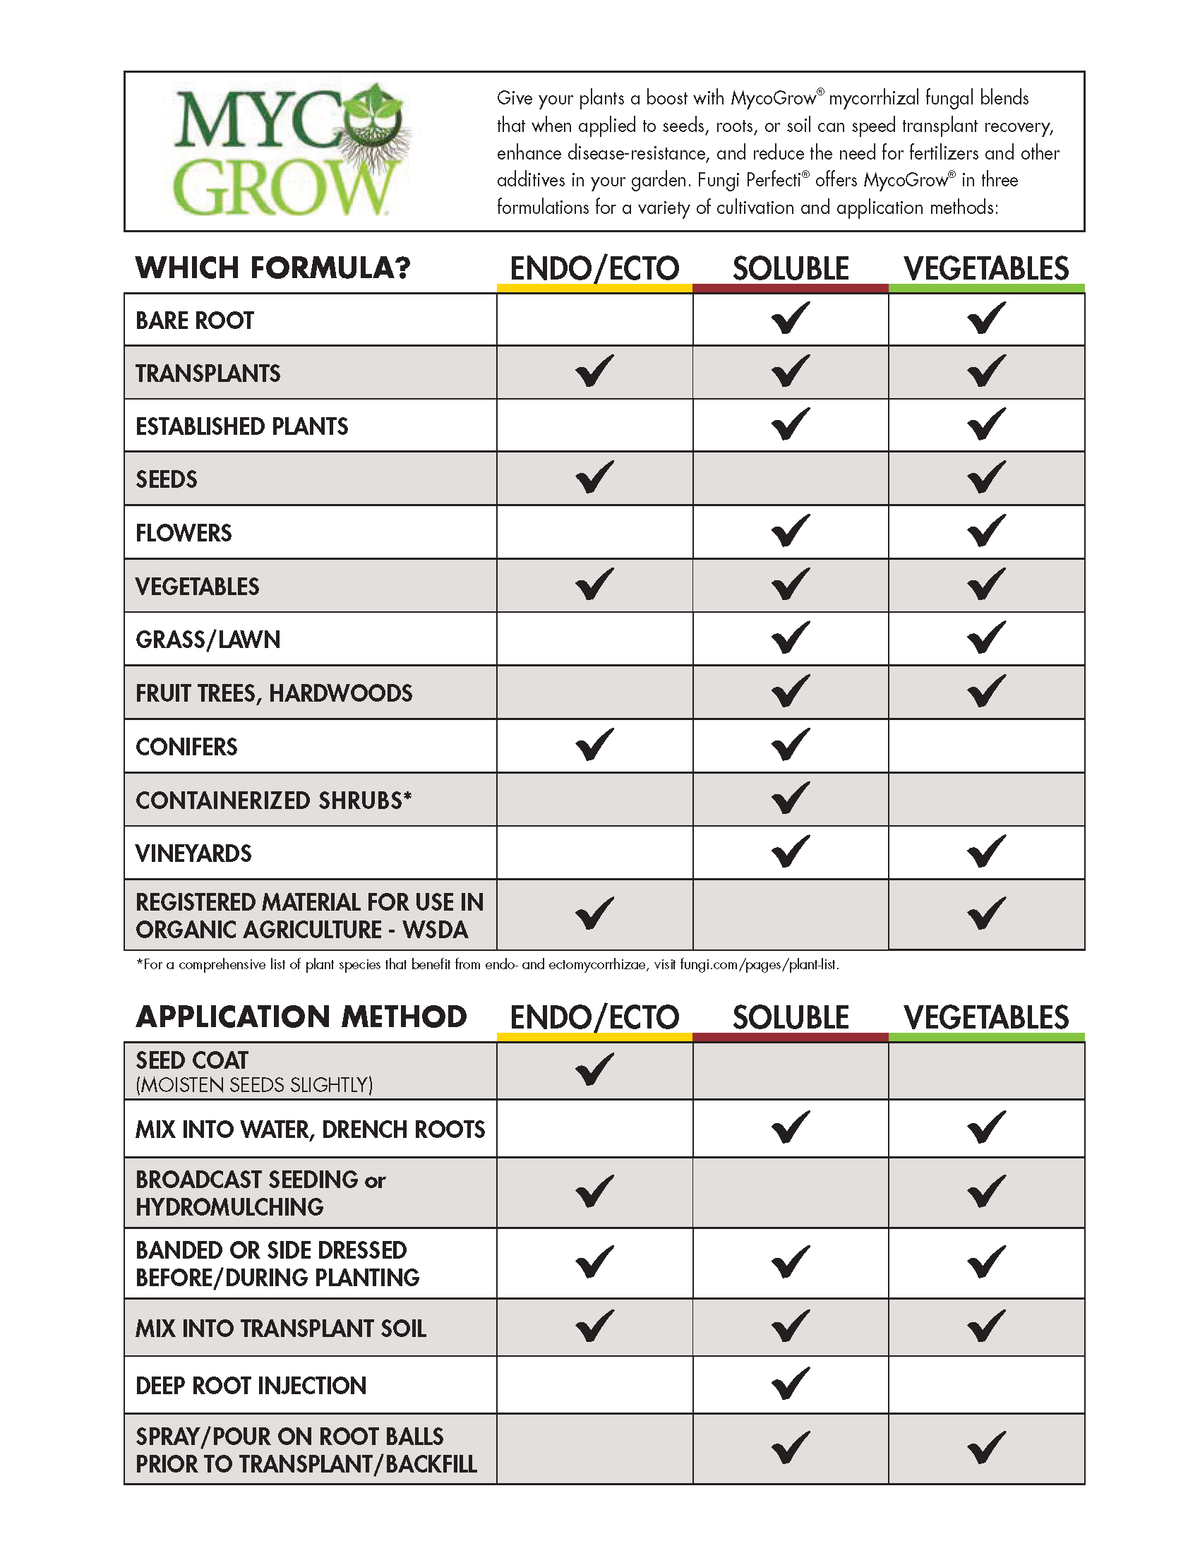 MycoGrow mycorrhizal fungal blends for plants solution chart